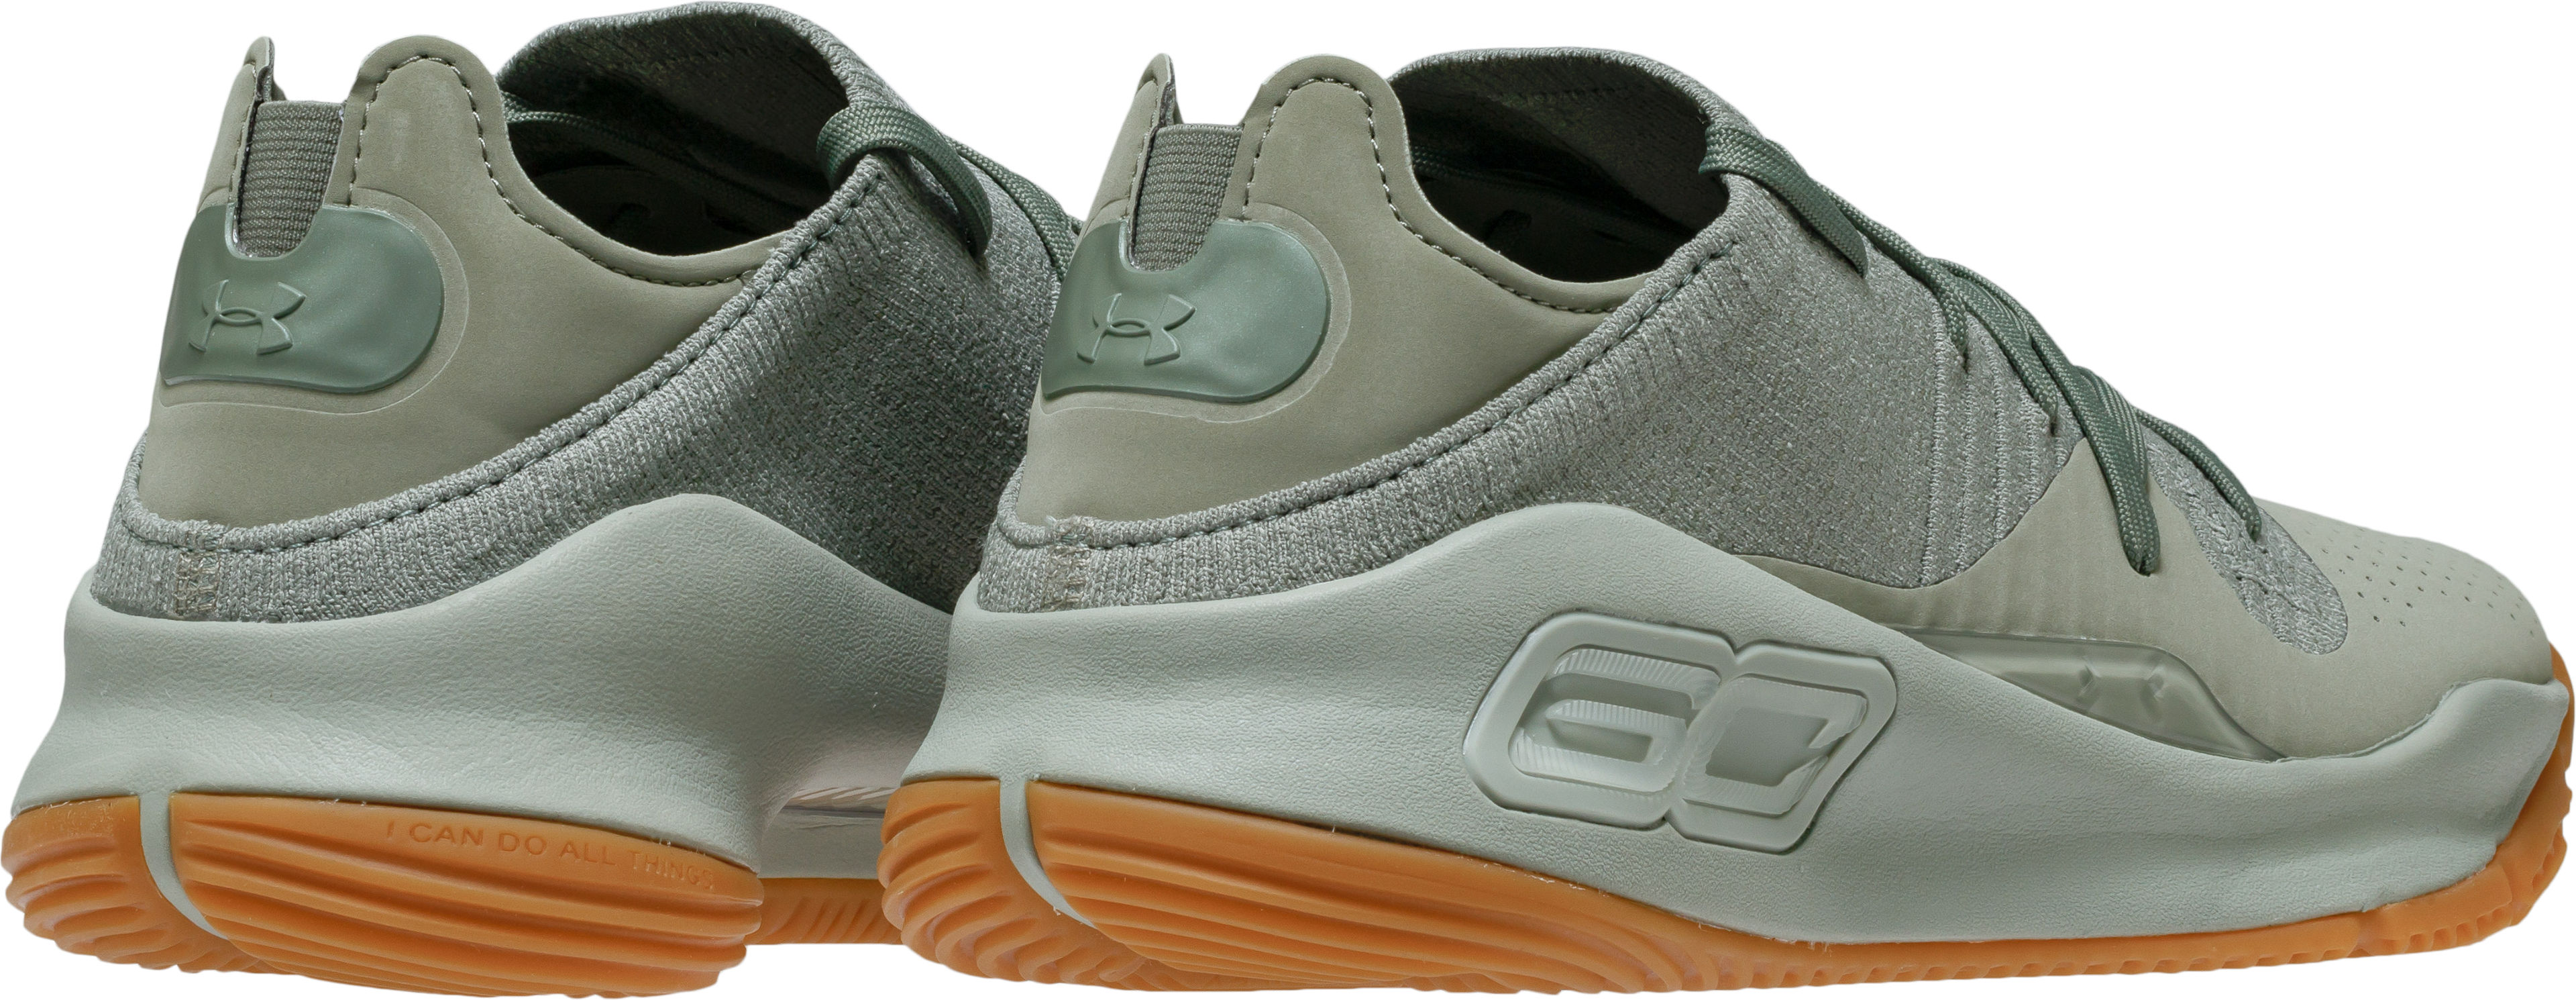 under armour curry 4 low